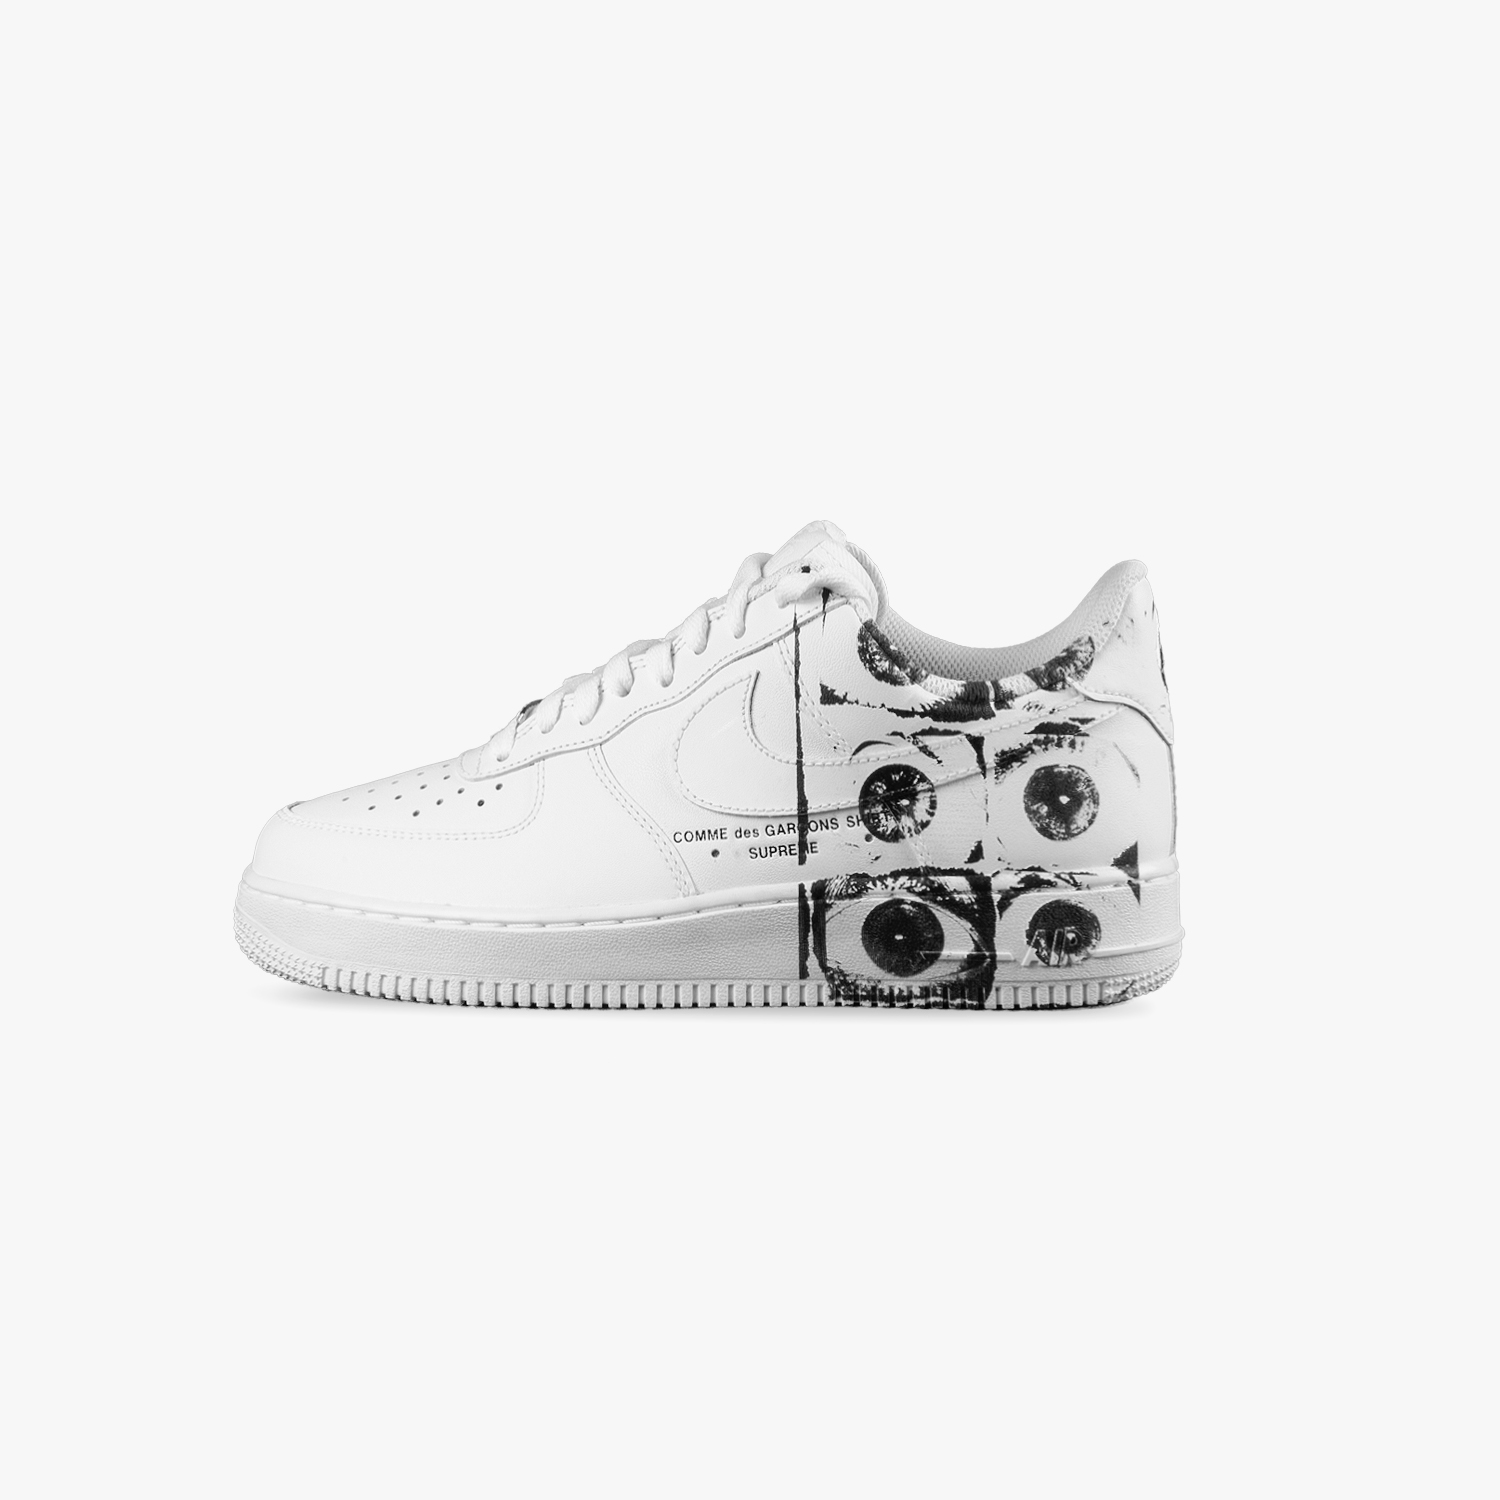 innovative design factory outlet 100% authentic Nike Air Force 1 '07 / Supreme / CDG